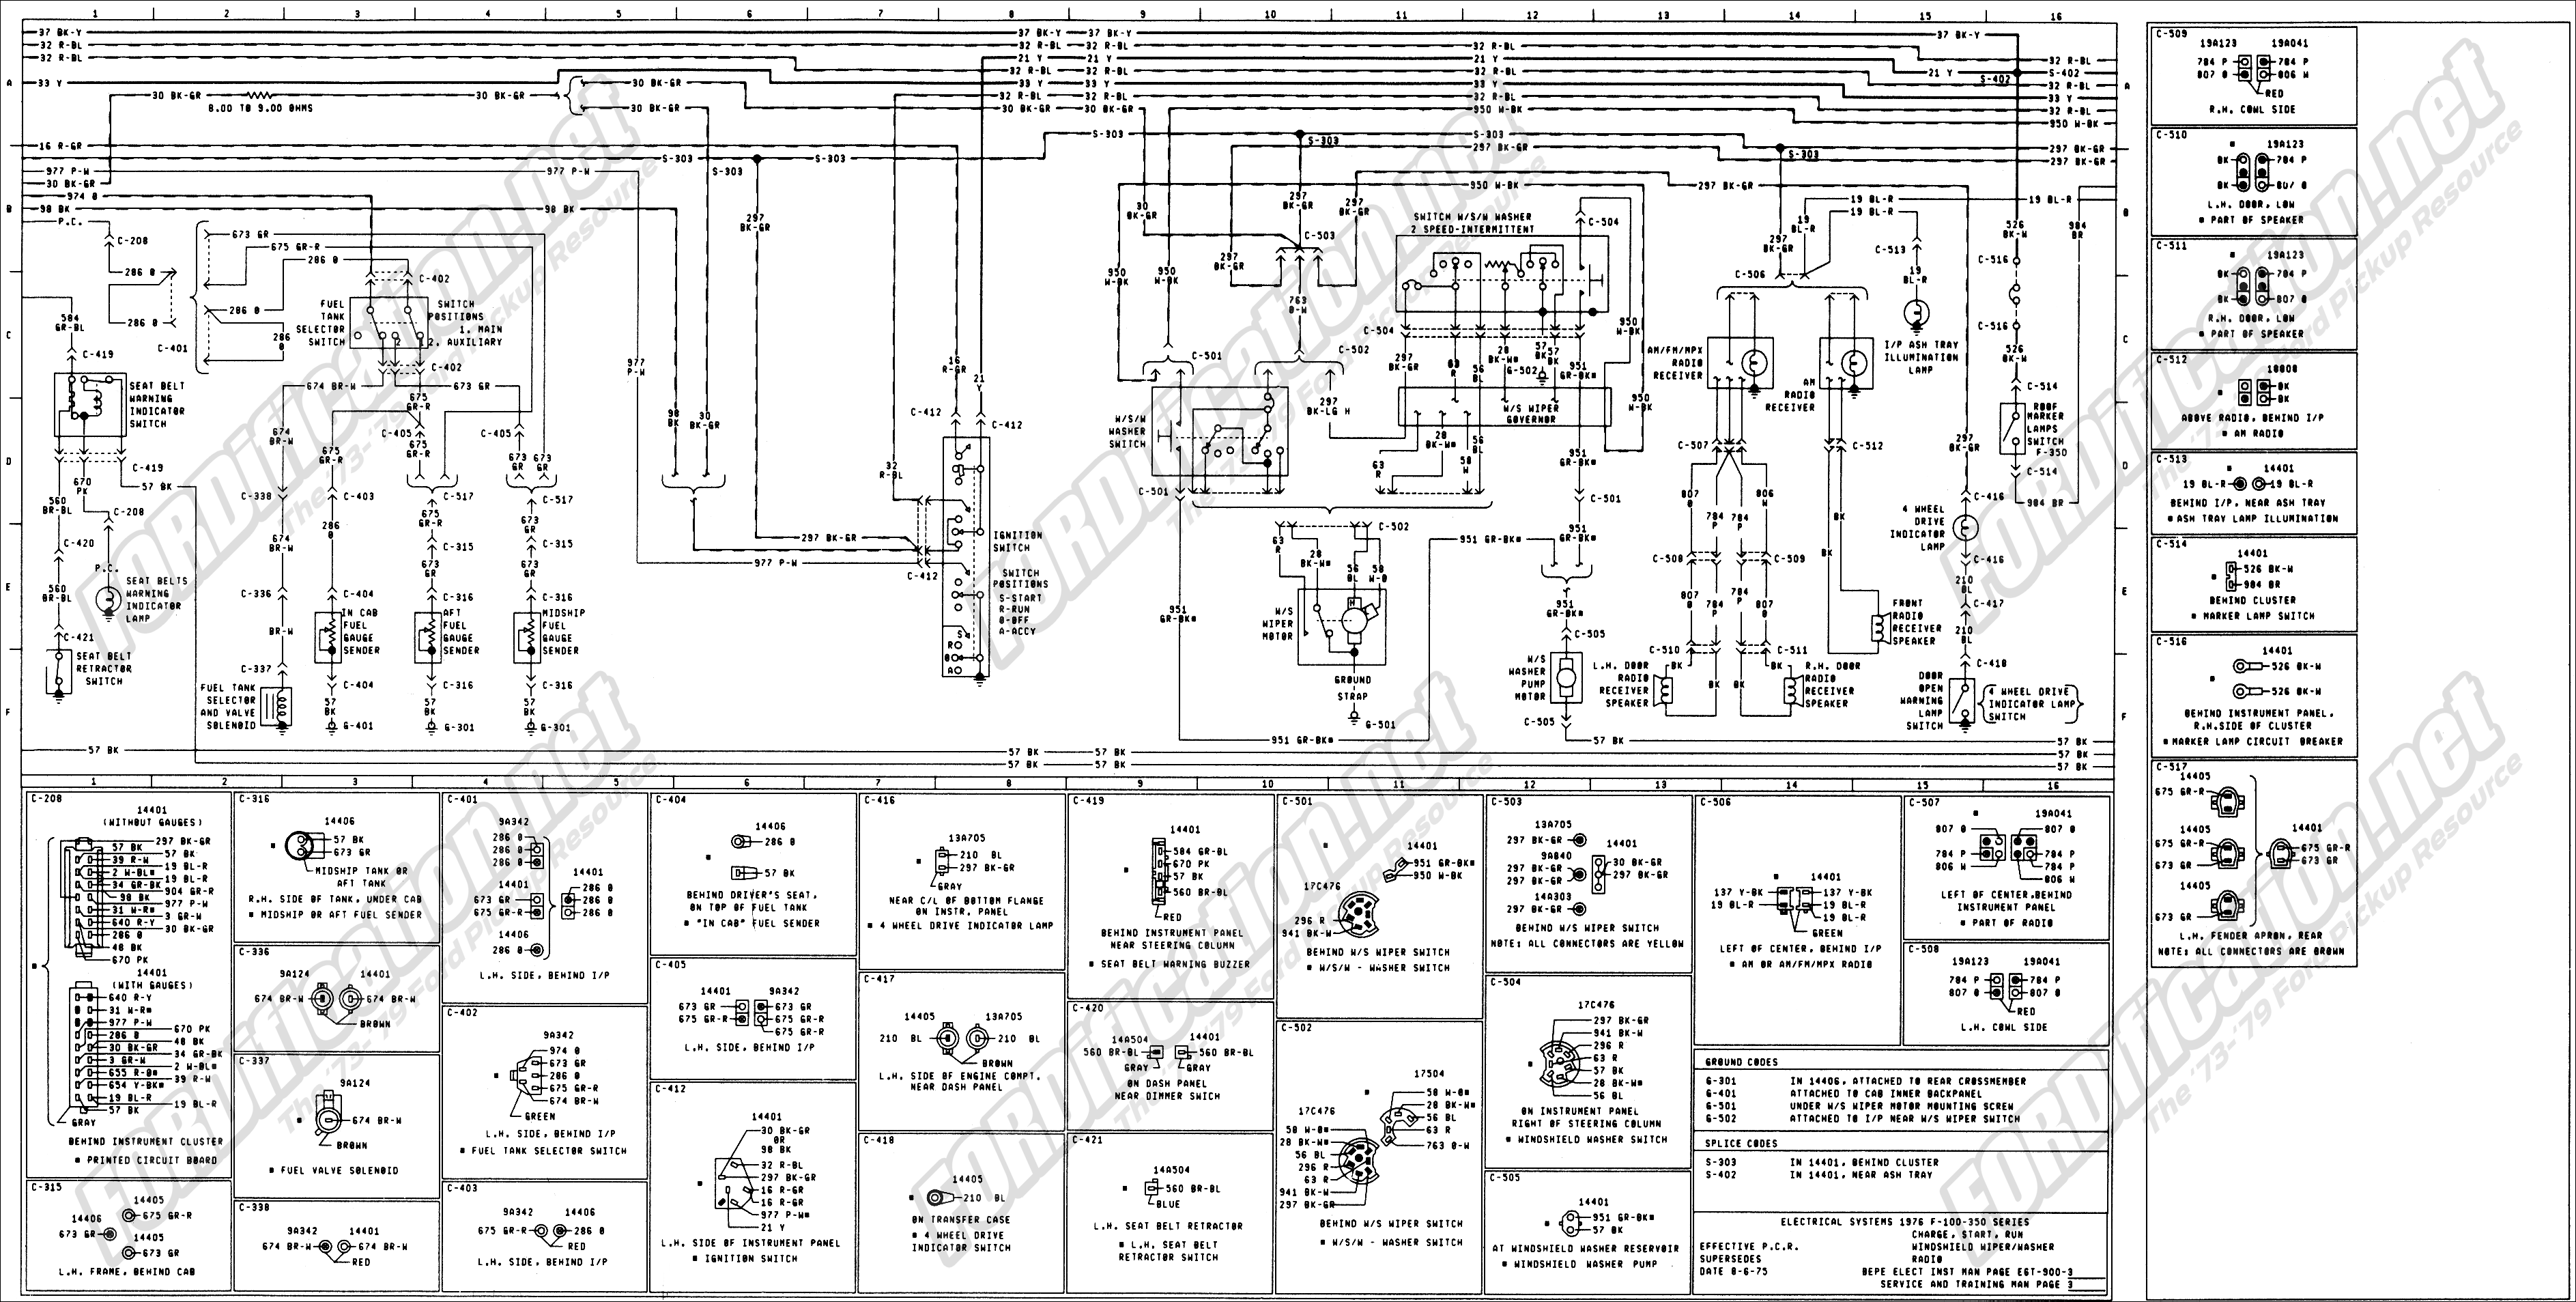 1999 Crown Victoria Fuse Diagram Wiring Library 99 Box 1973 1979 Ford Truck Diagrams Schematics Expedition 2004